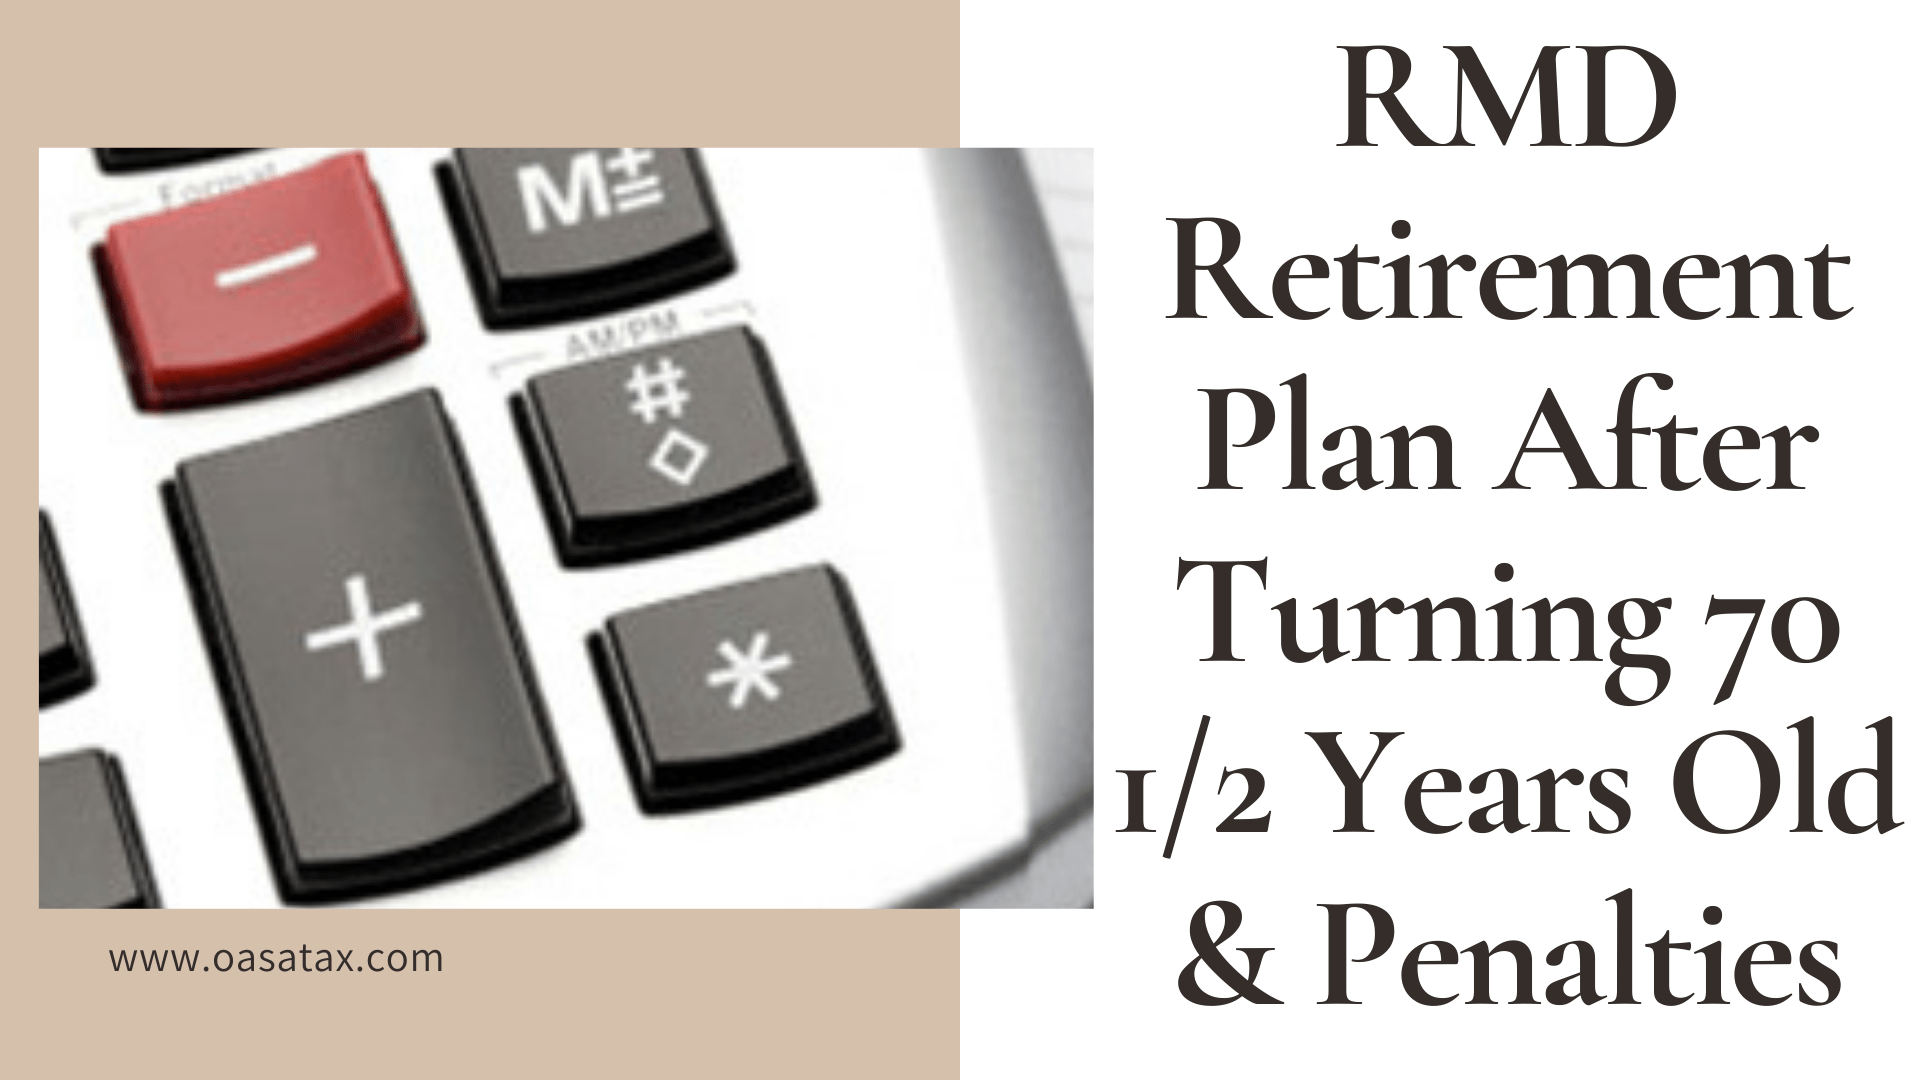 RMD Retirement Plan above 70 Years Old